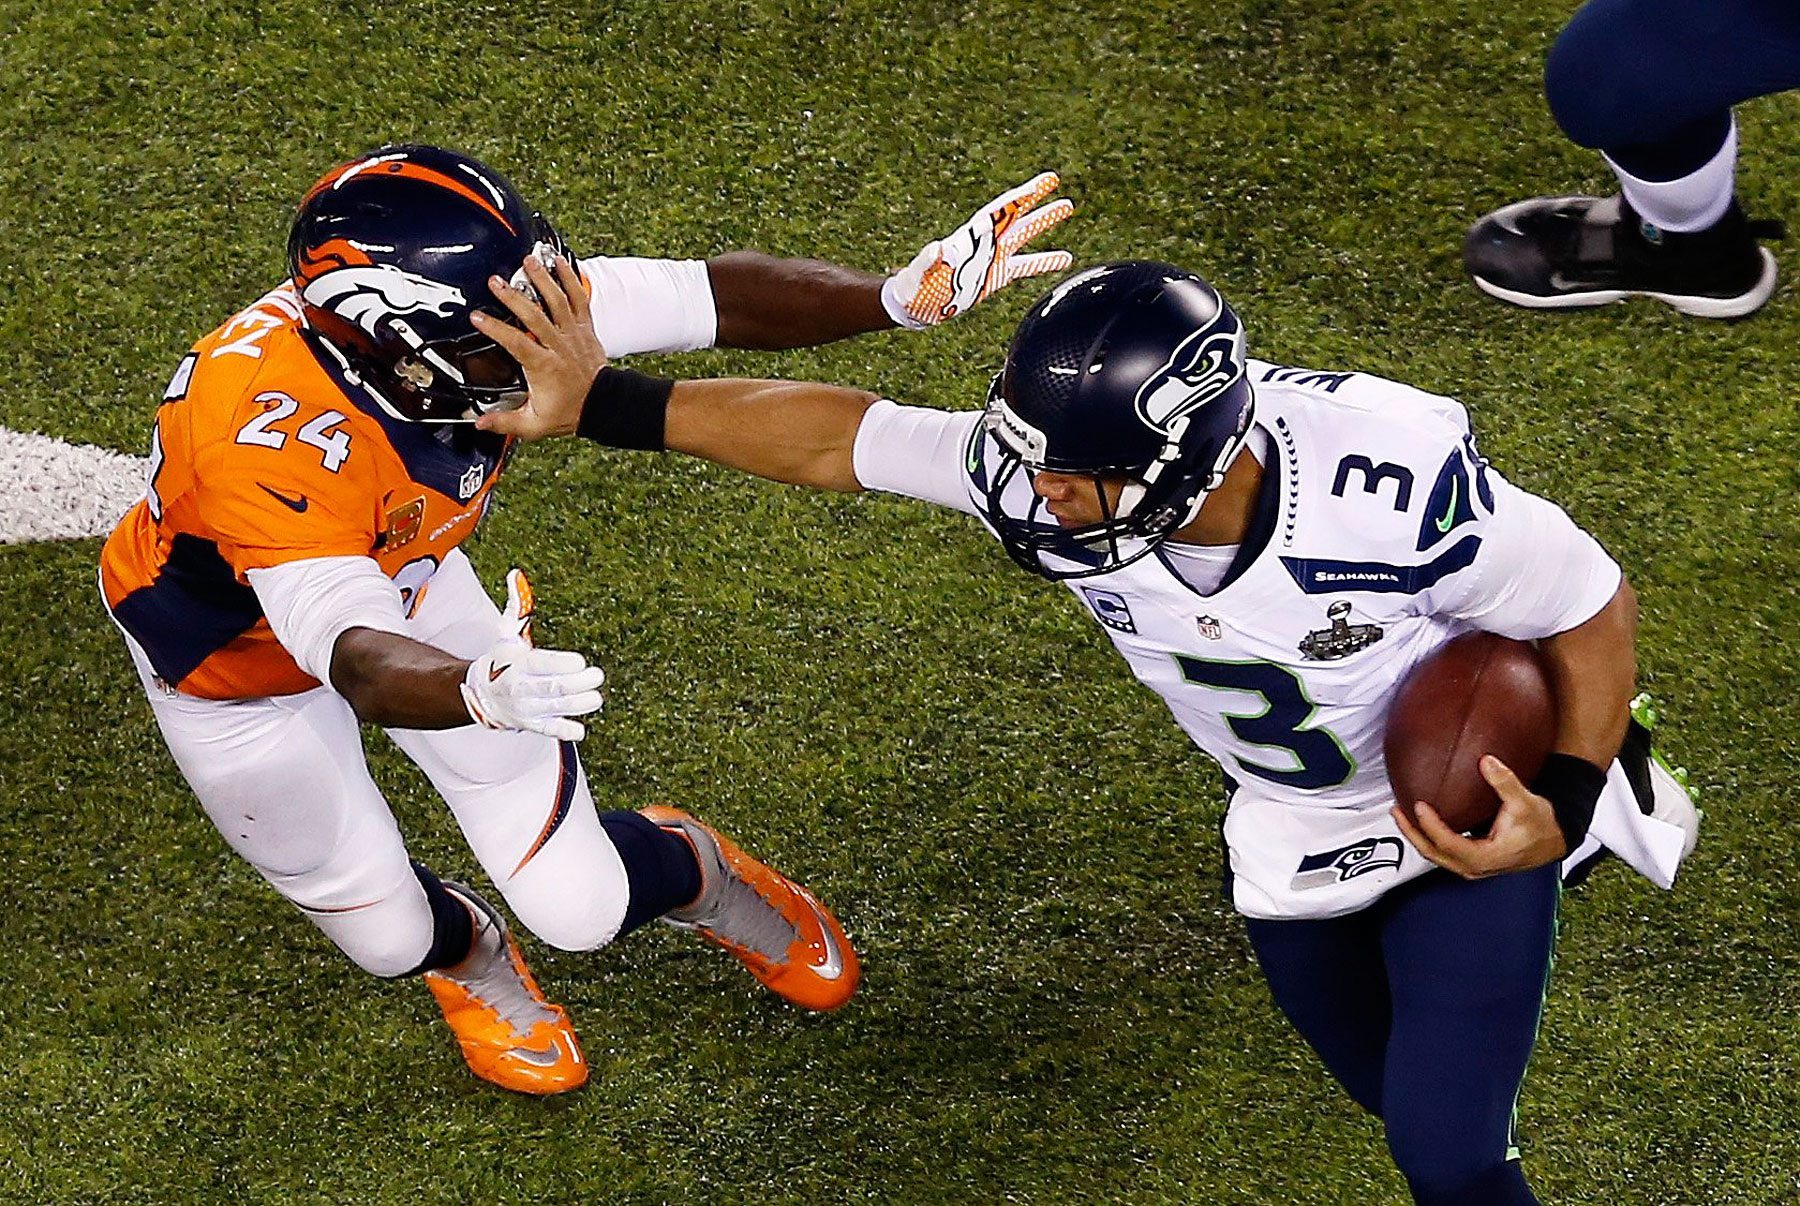 Quarterback Russell Wilson of the Seattle Seahawks stiff arms cornerback Champ Bailey of the Denver Broncos.